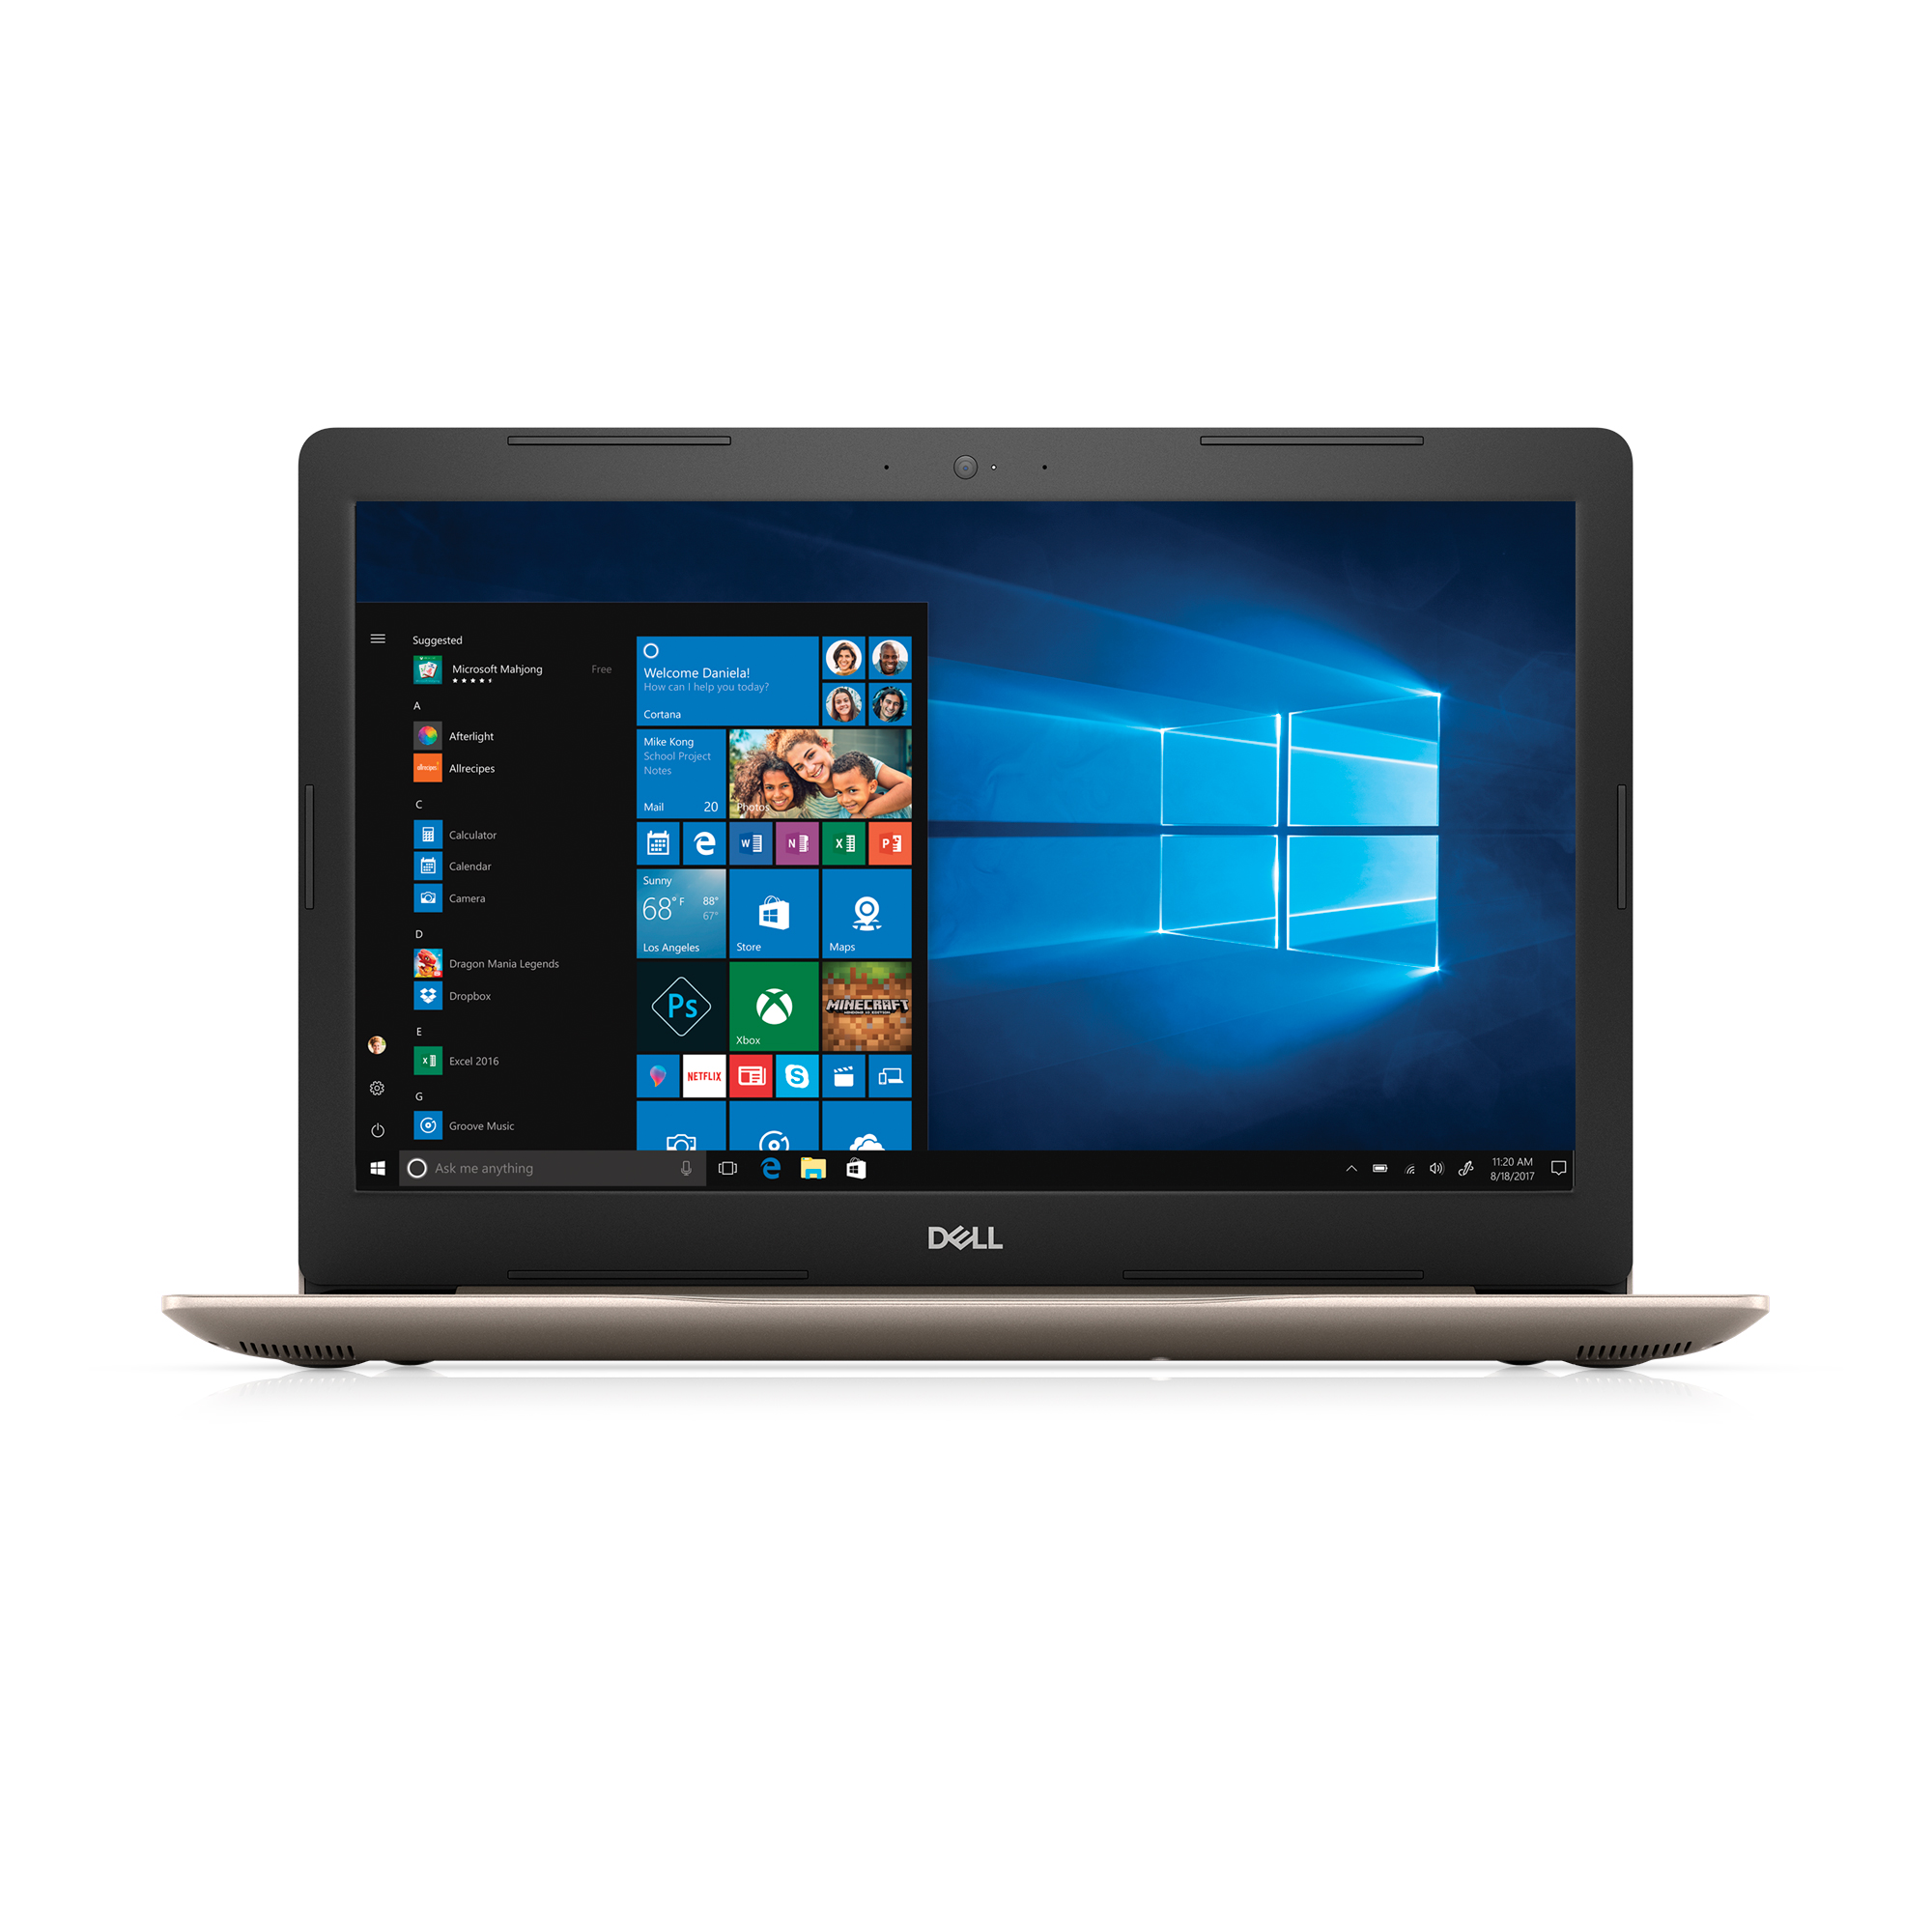 """Dell Inspiron 15 5000 (5575) Laptop, 15.6"""", AMD Ryzen™ 3 2200U with Radeon Vega3 Graphics, Integrated Graphics with AMD APU, 1TB HDD, 8GB RAM, i5575-A772GLD-PUS"""